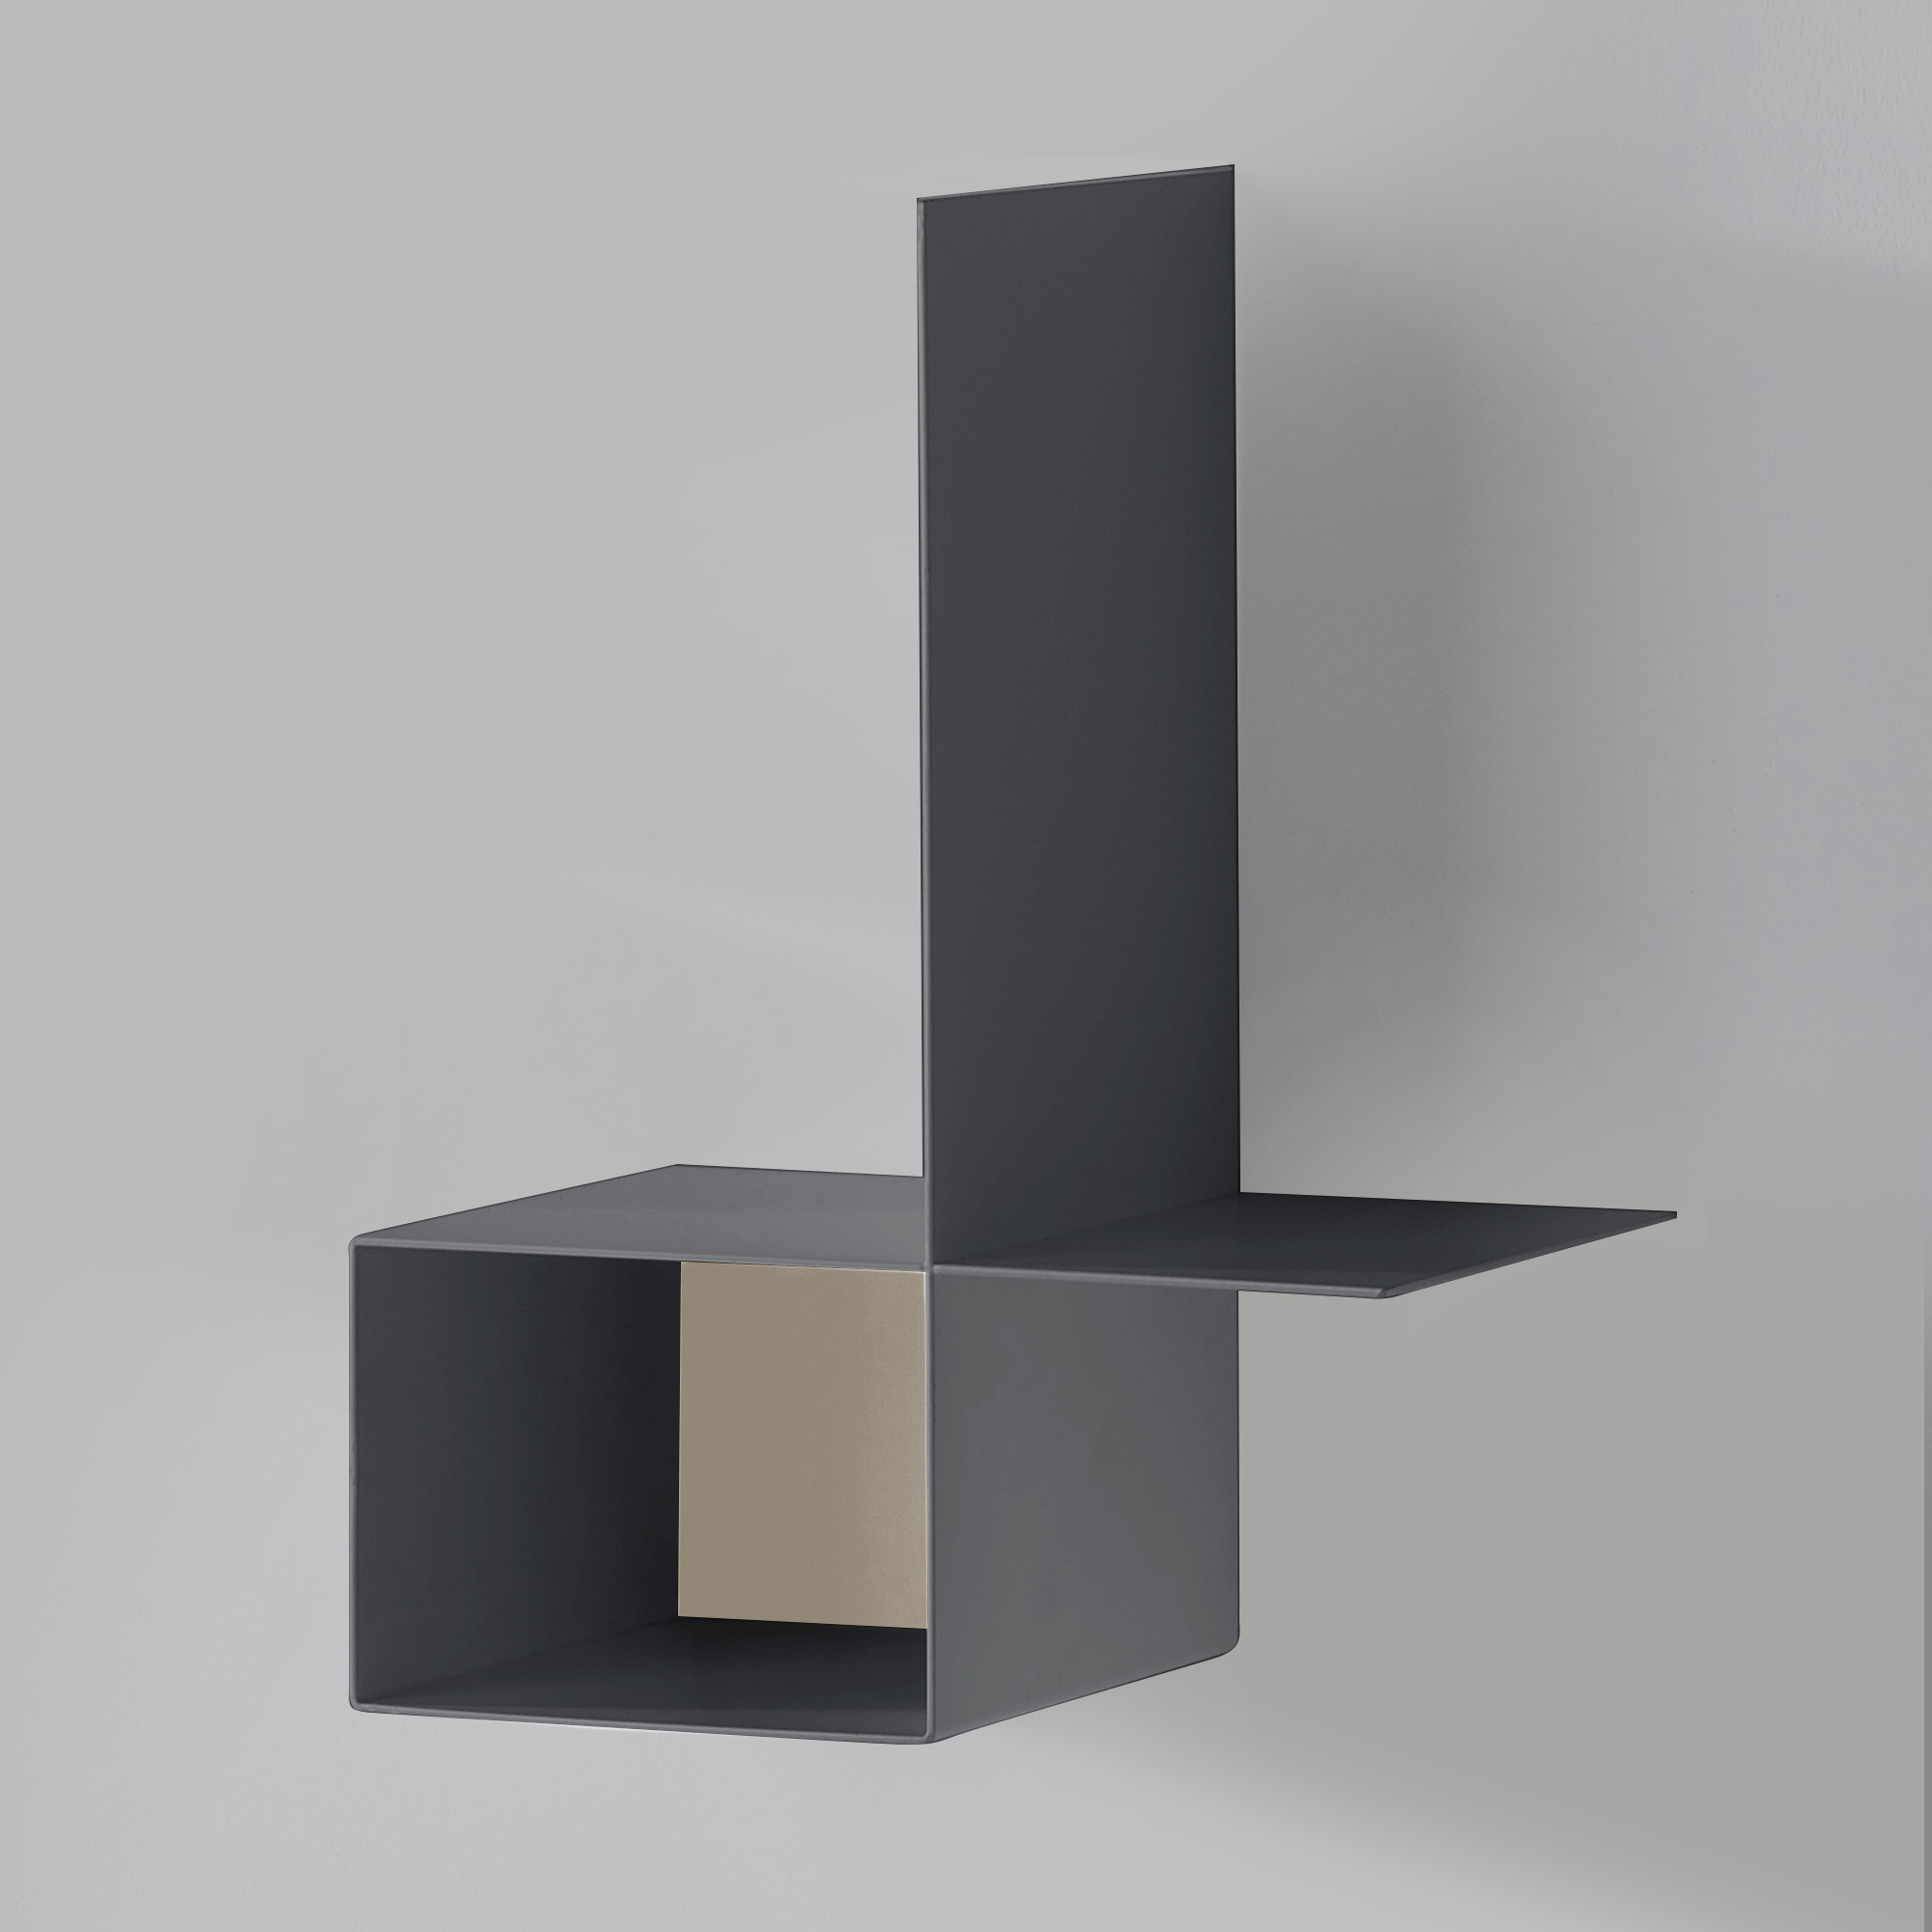 mdf italia randomissimo modul b regal f101402s041f057l001r reuter onlineshop. Black Bedroom Furniture Sets. Home Design Ideas